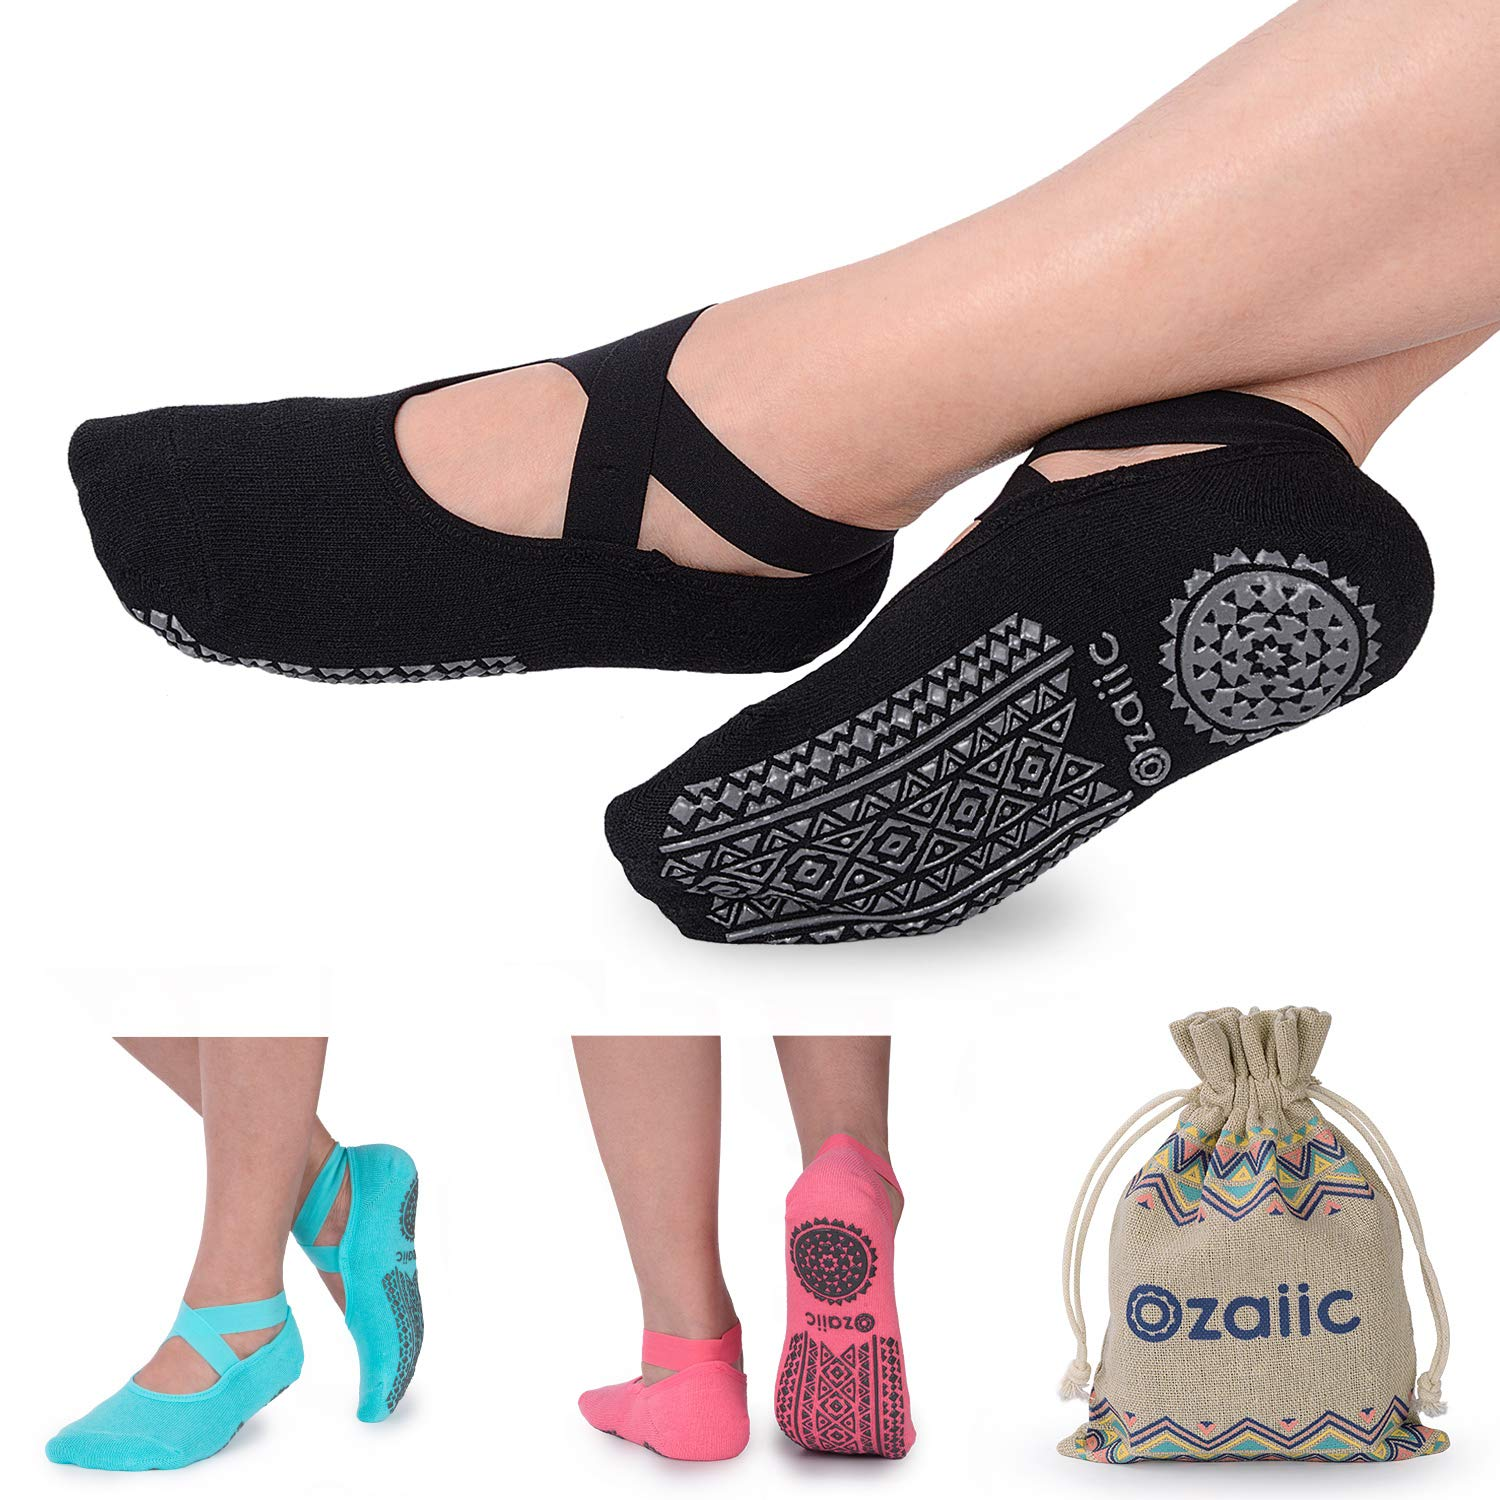 Ozaiic Yoga Socks Women Non-Slip Grips & Straps, Ideal Pilates, Pure Barre, Ballet, Dance, Barefoot Workout Yoga Socks for Women